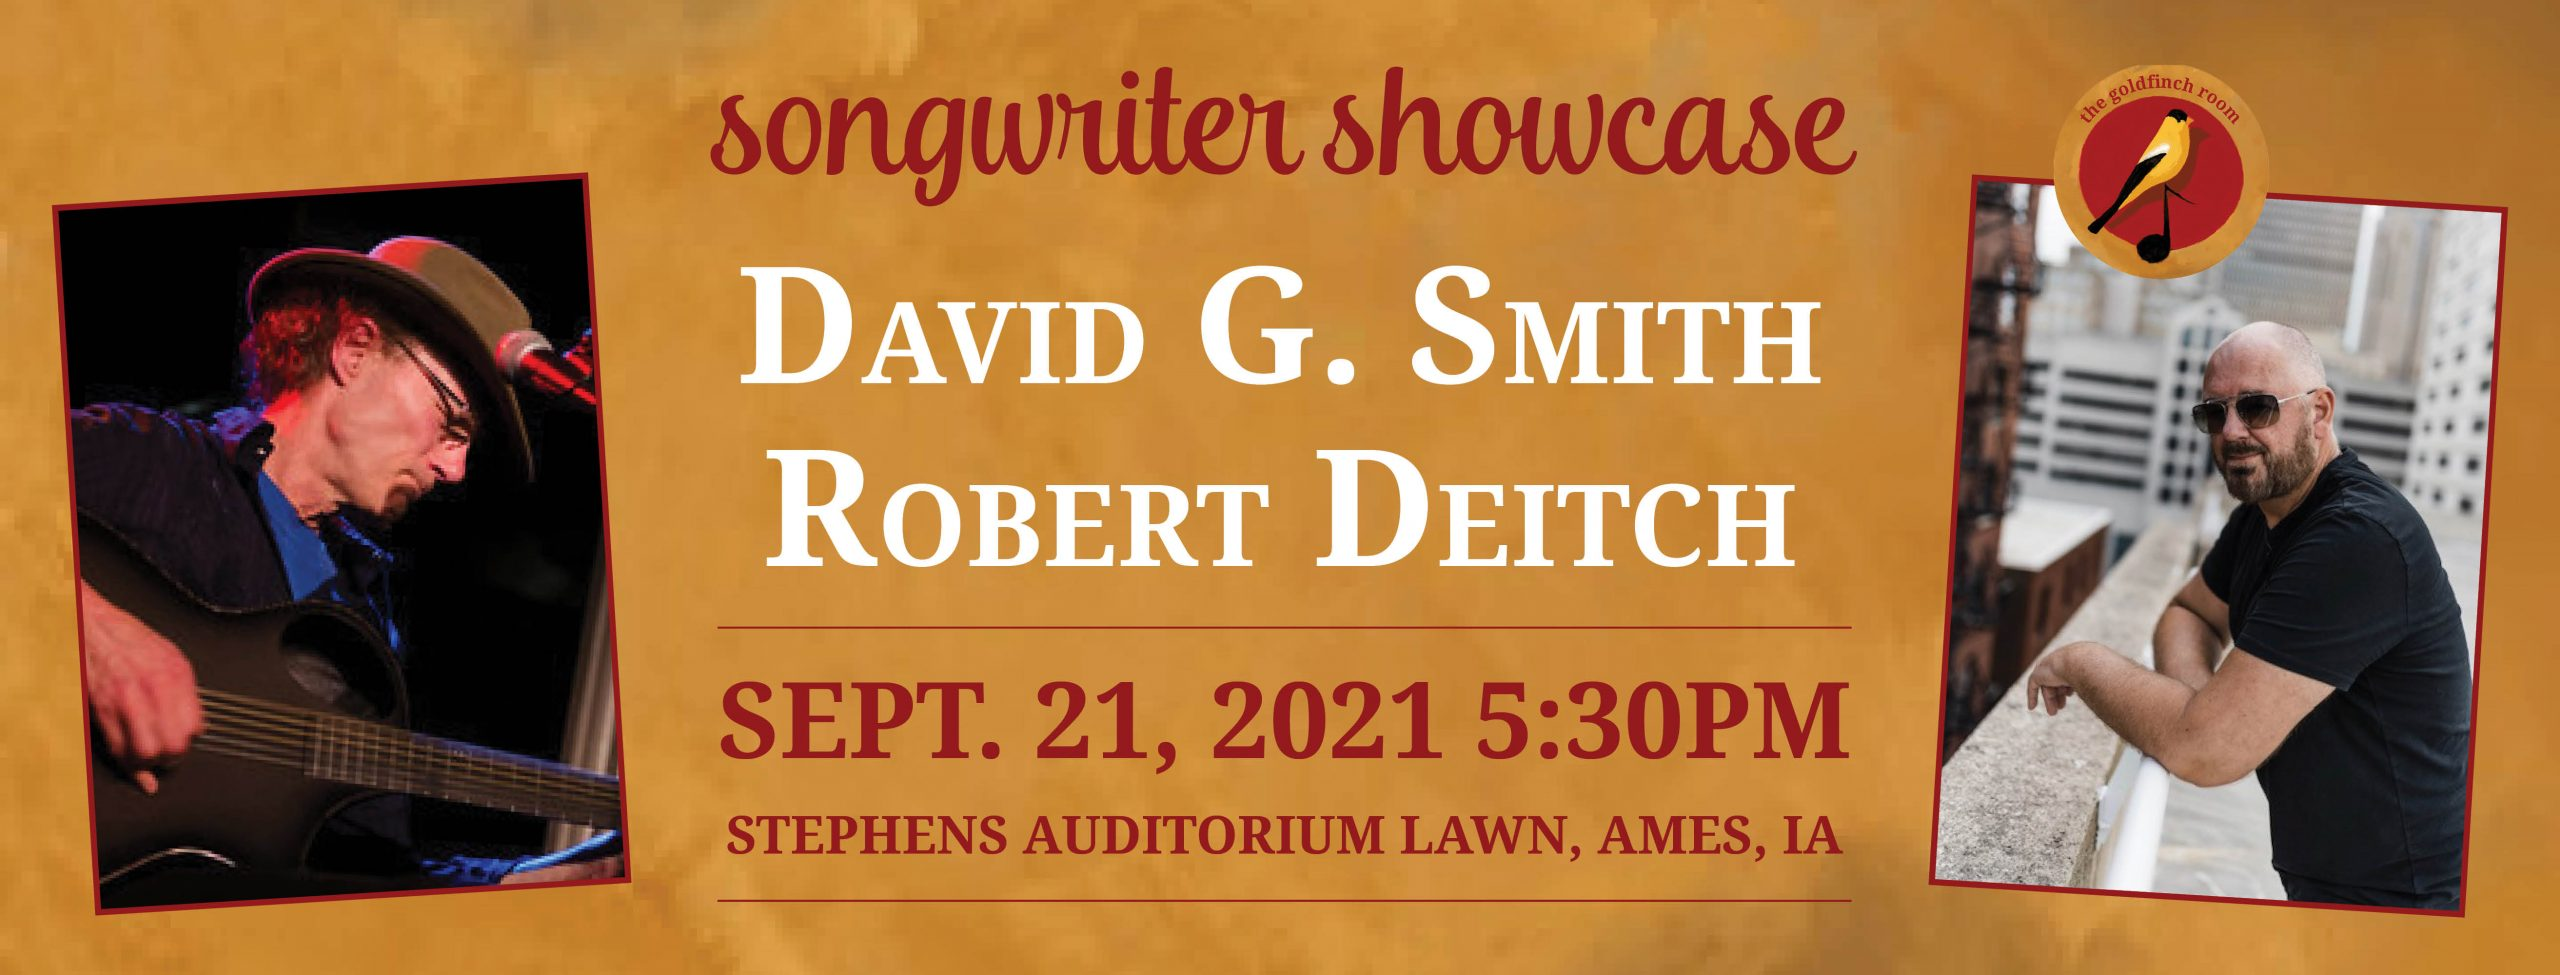 David G. Smith and Robert Deitch at the Goldfinch Room